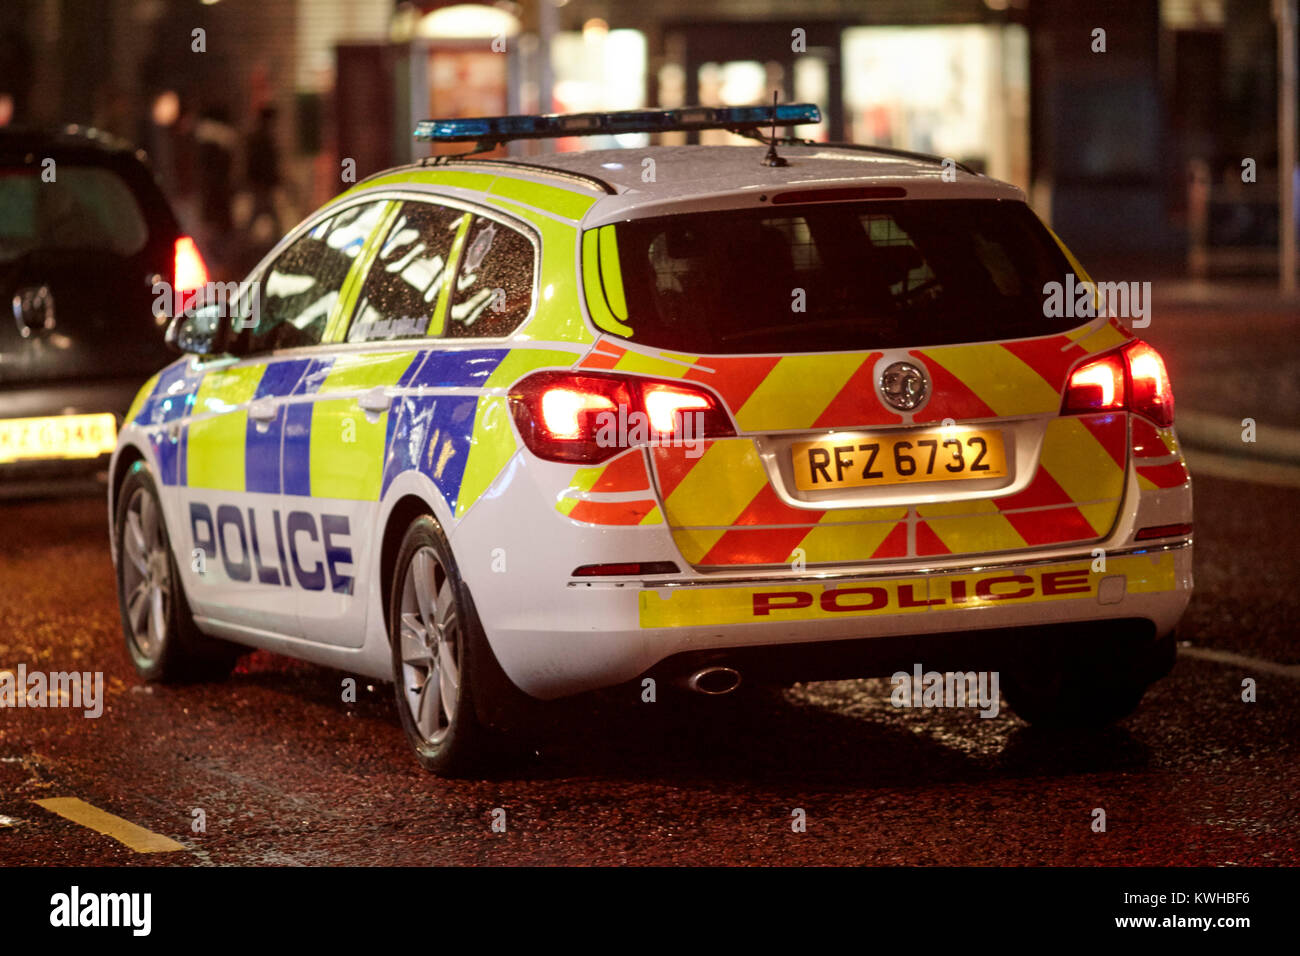 police vehicle following car at night in city centre belfast northern ireland uk Stock Photo